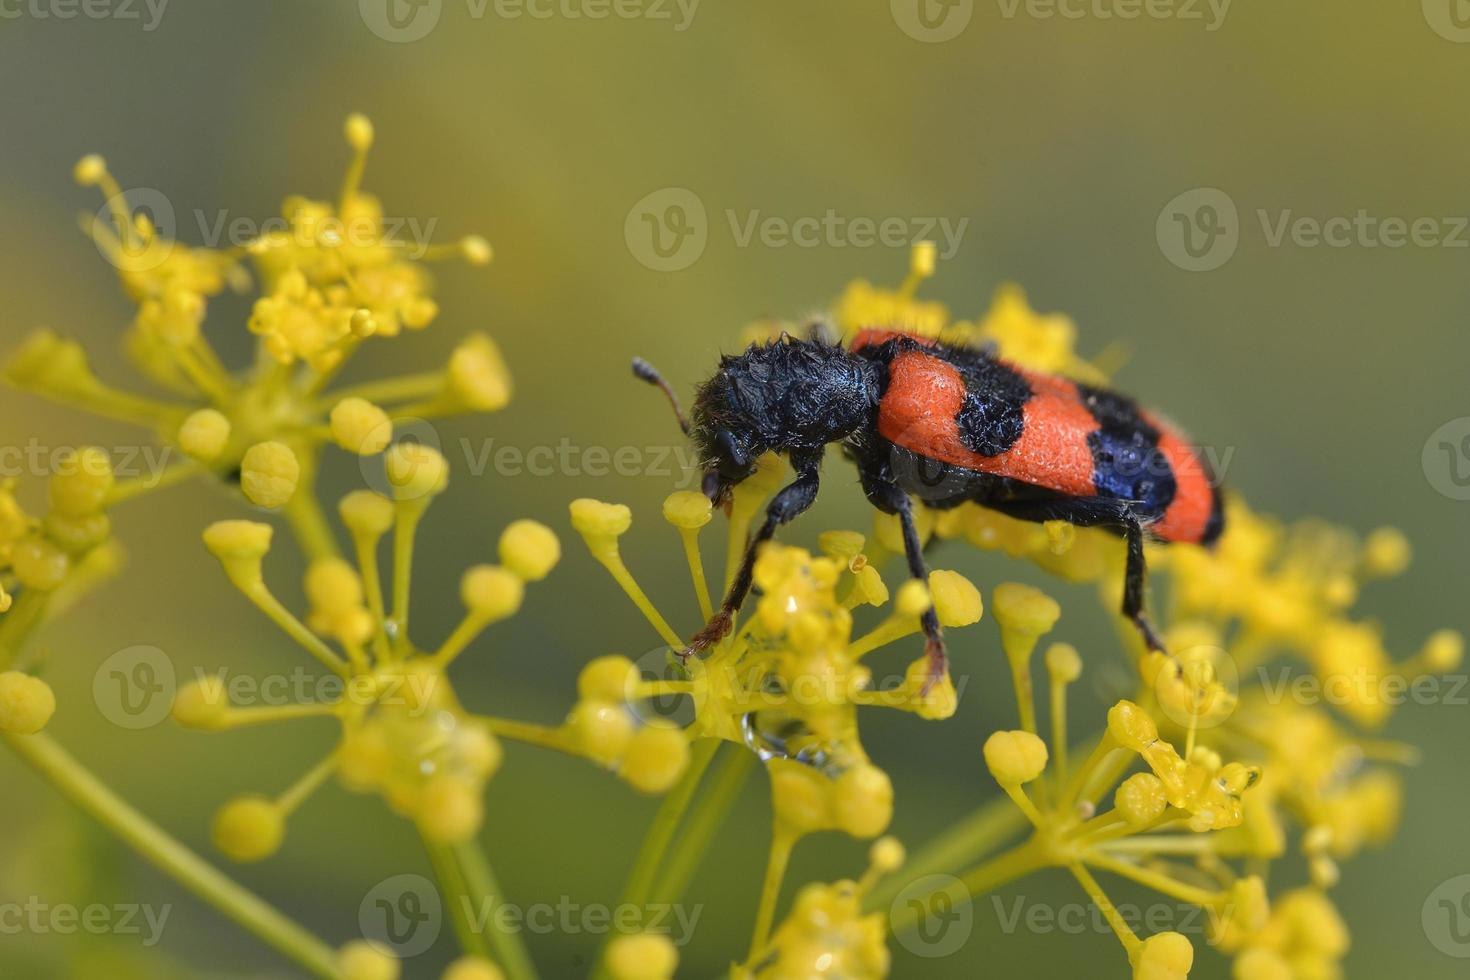 Trichodes is a genus of checkered beetles belonging to the family Cleridae, Greece photo